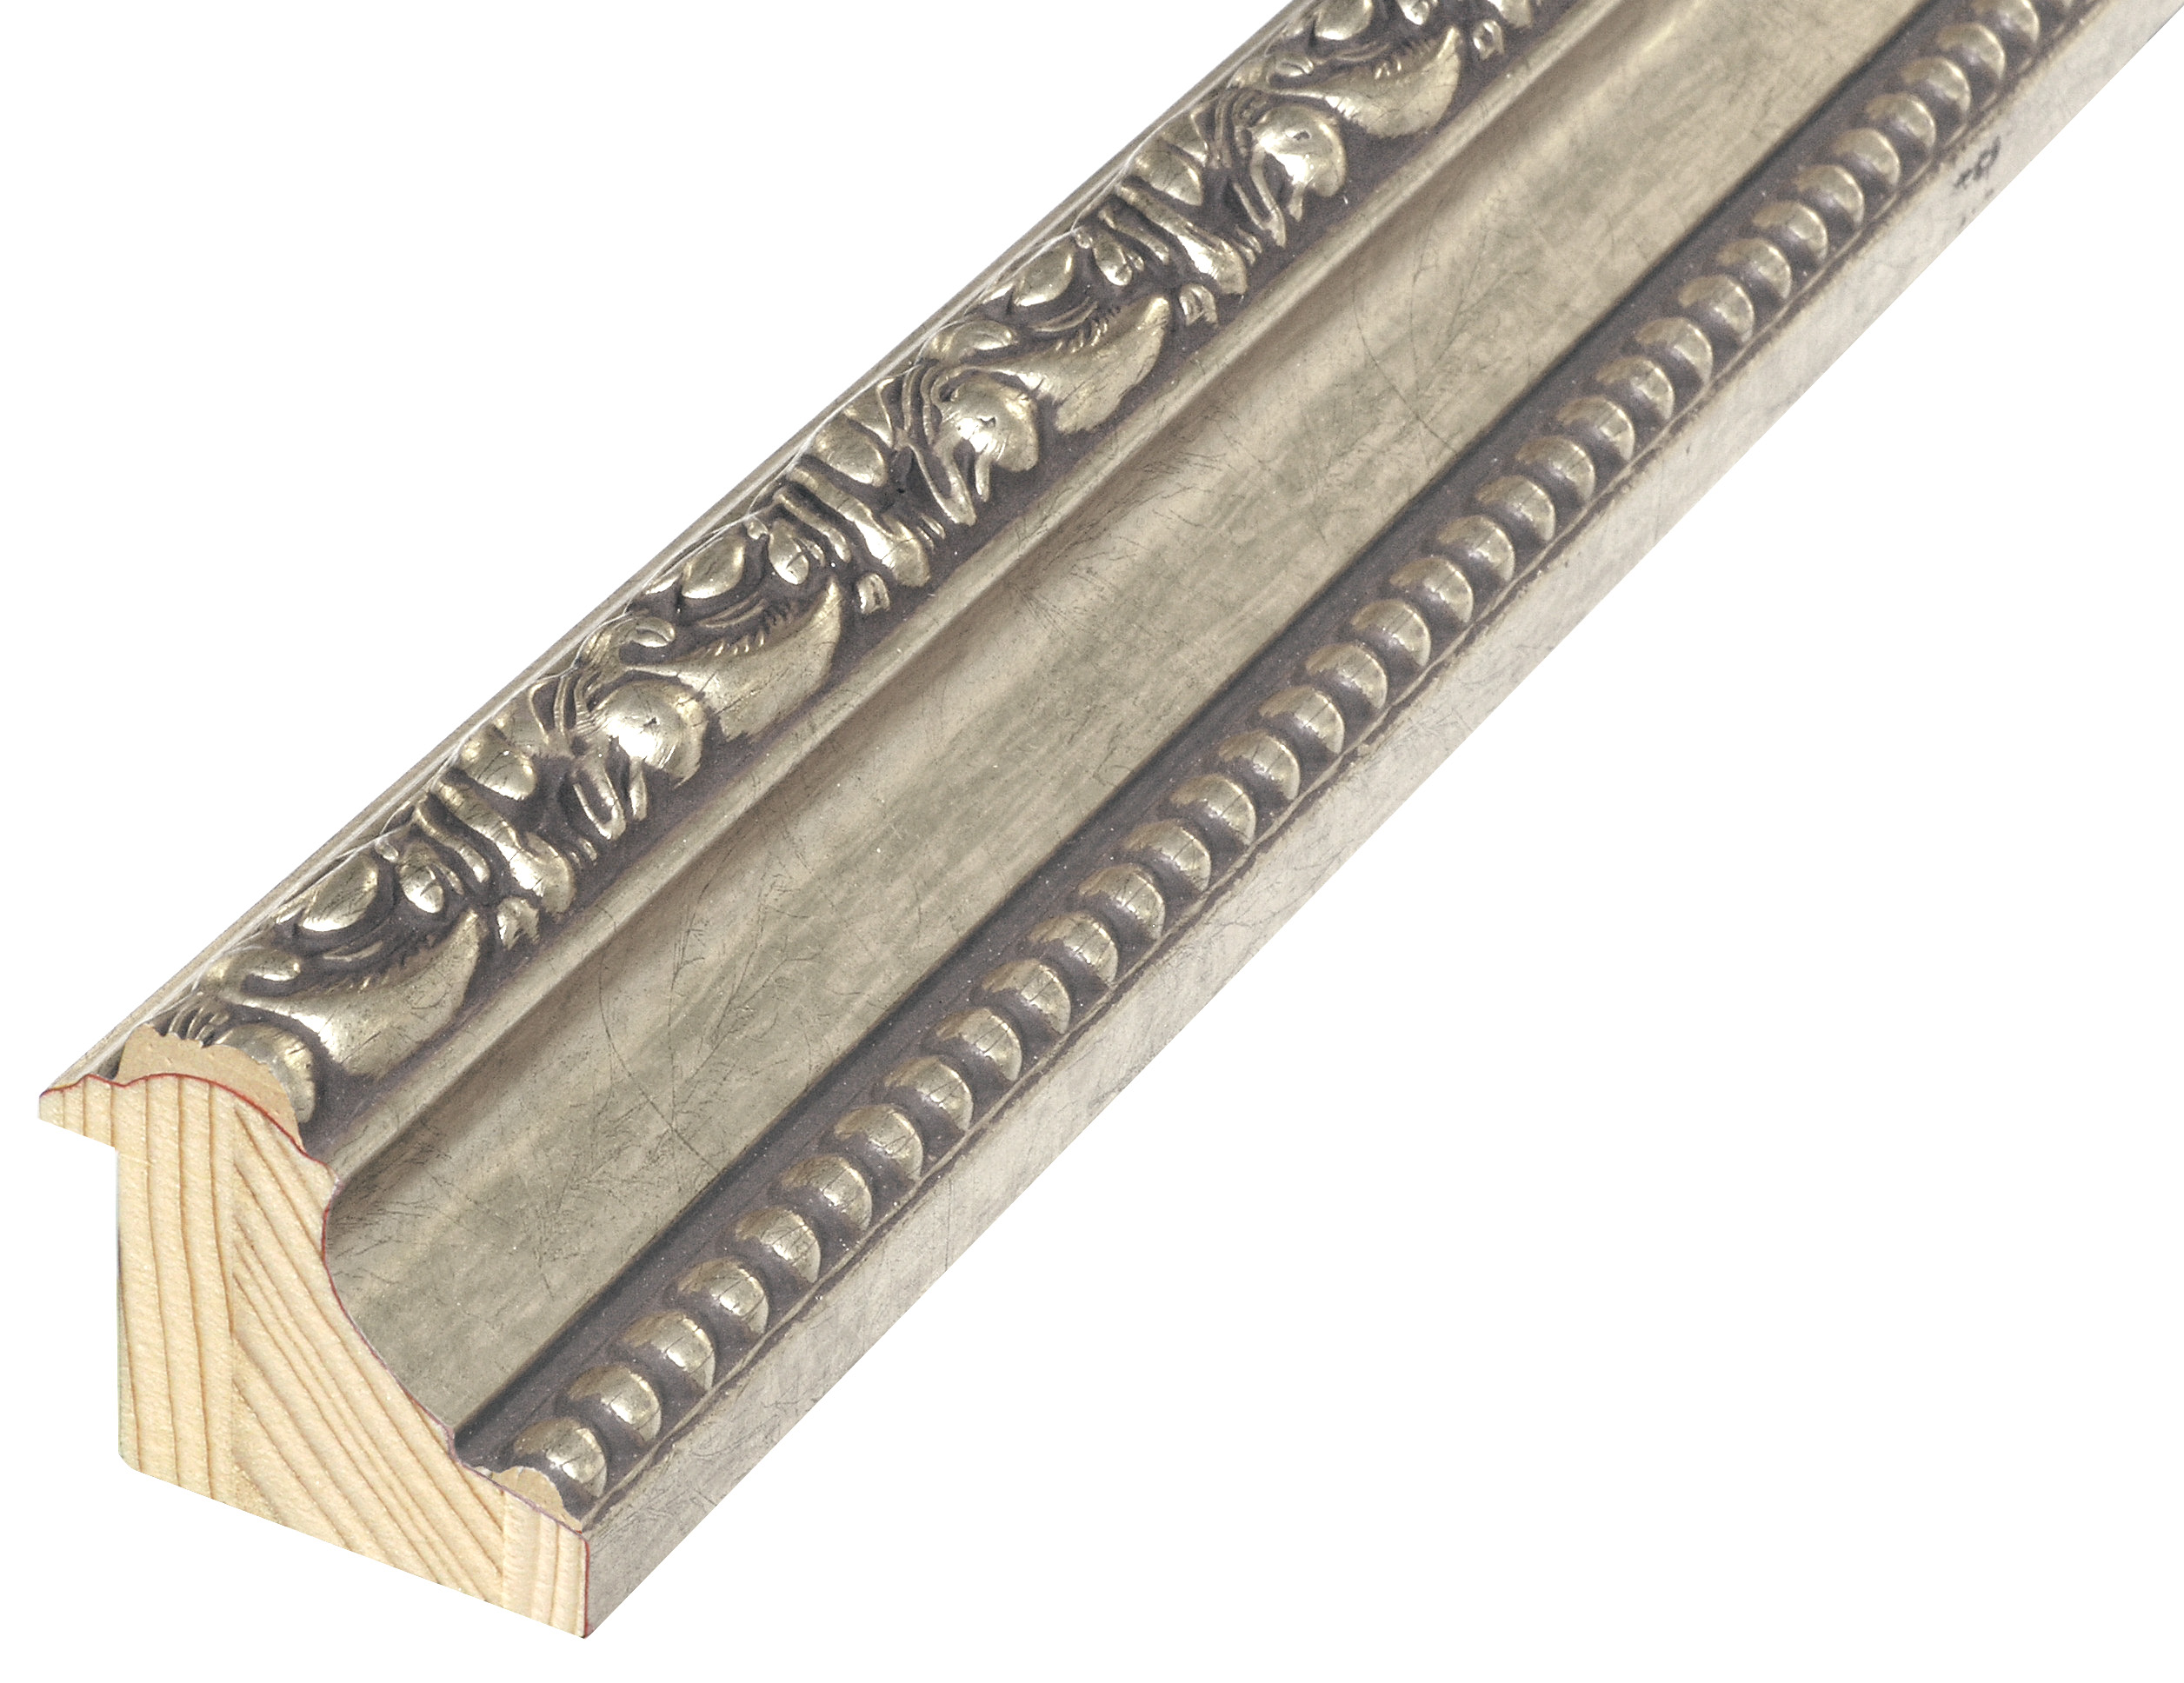 Moulding jointed fir, width 50mm, height 44 - Silver, decorations